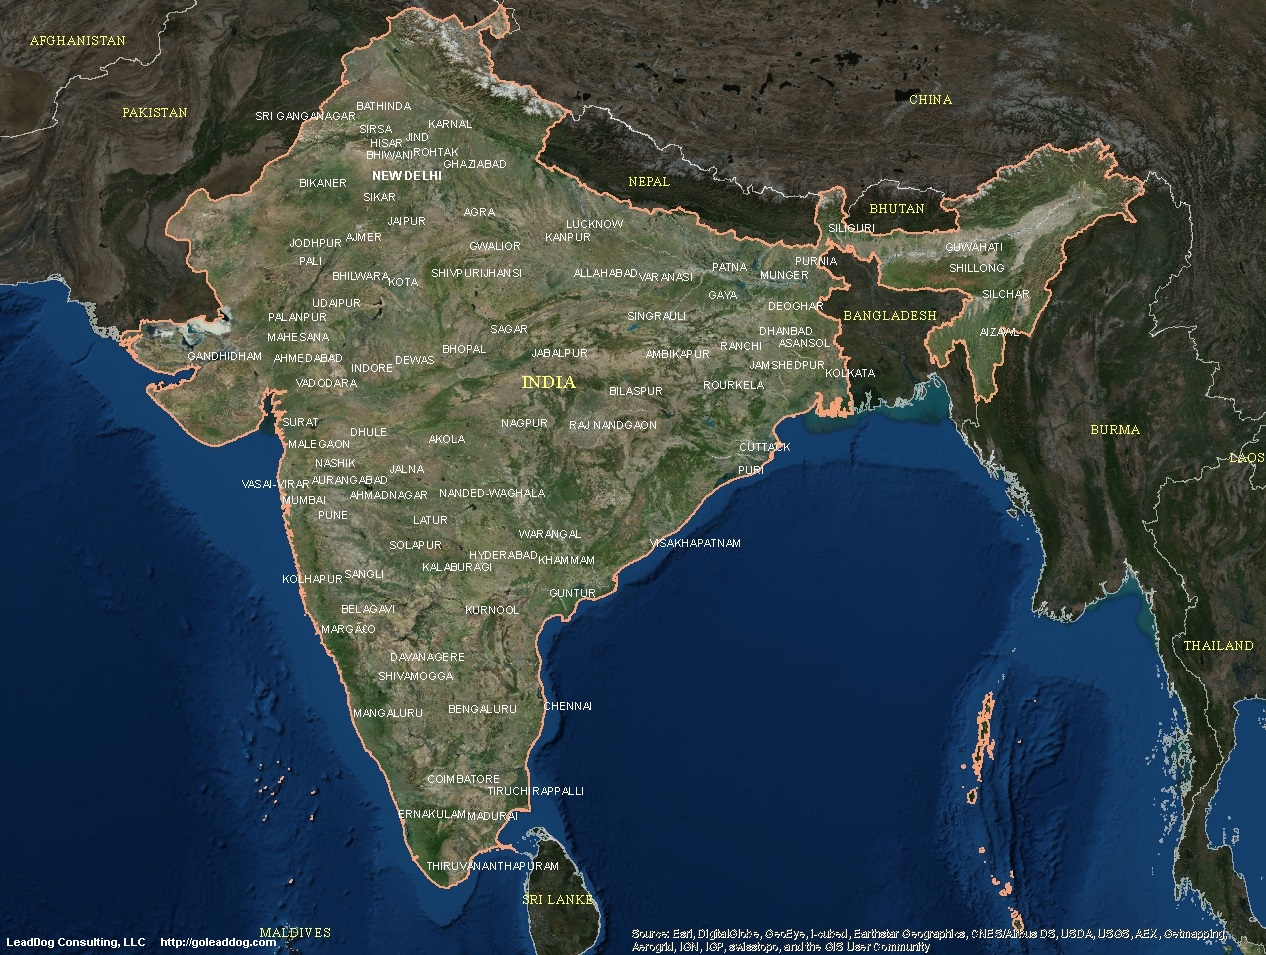 India Satelite Map India Satellite Maps | LeadDog Consulting